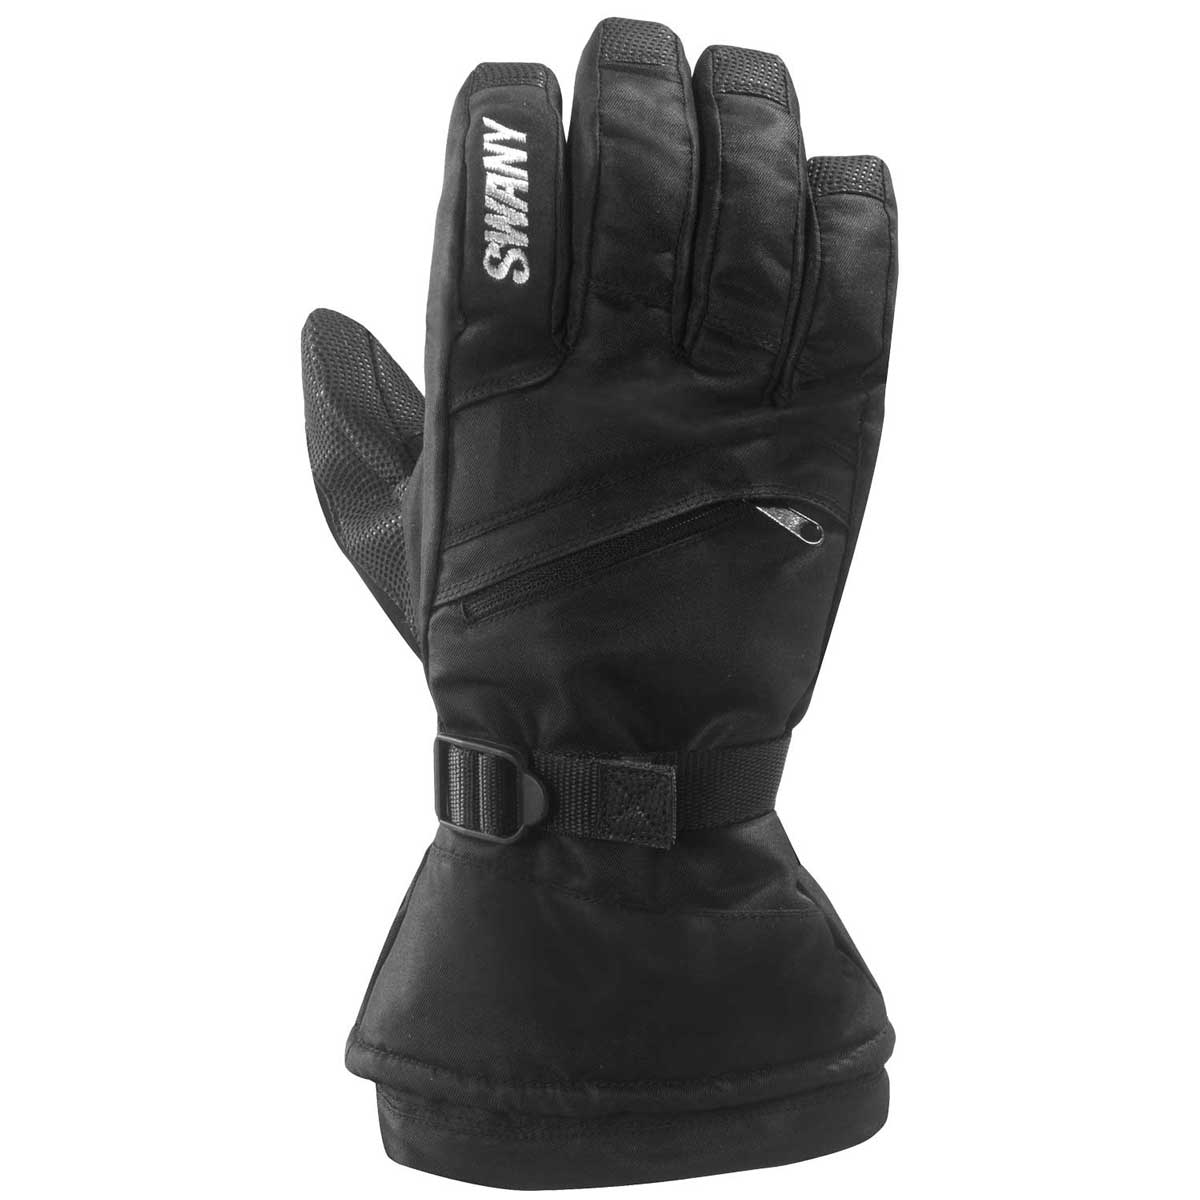 Swany X-Over Glove - Men's